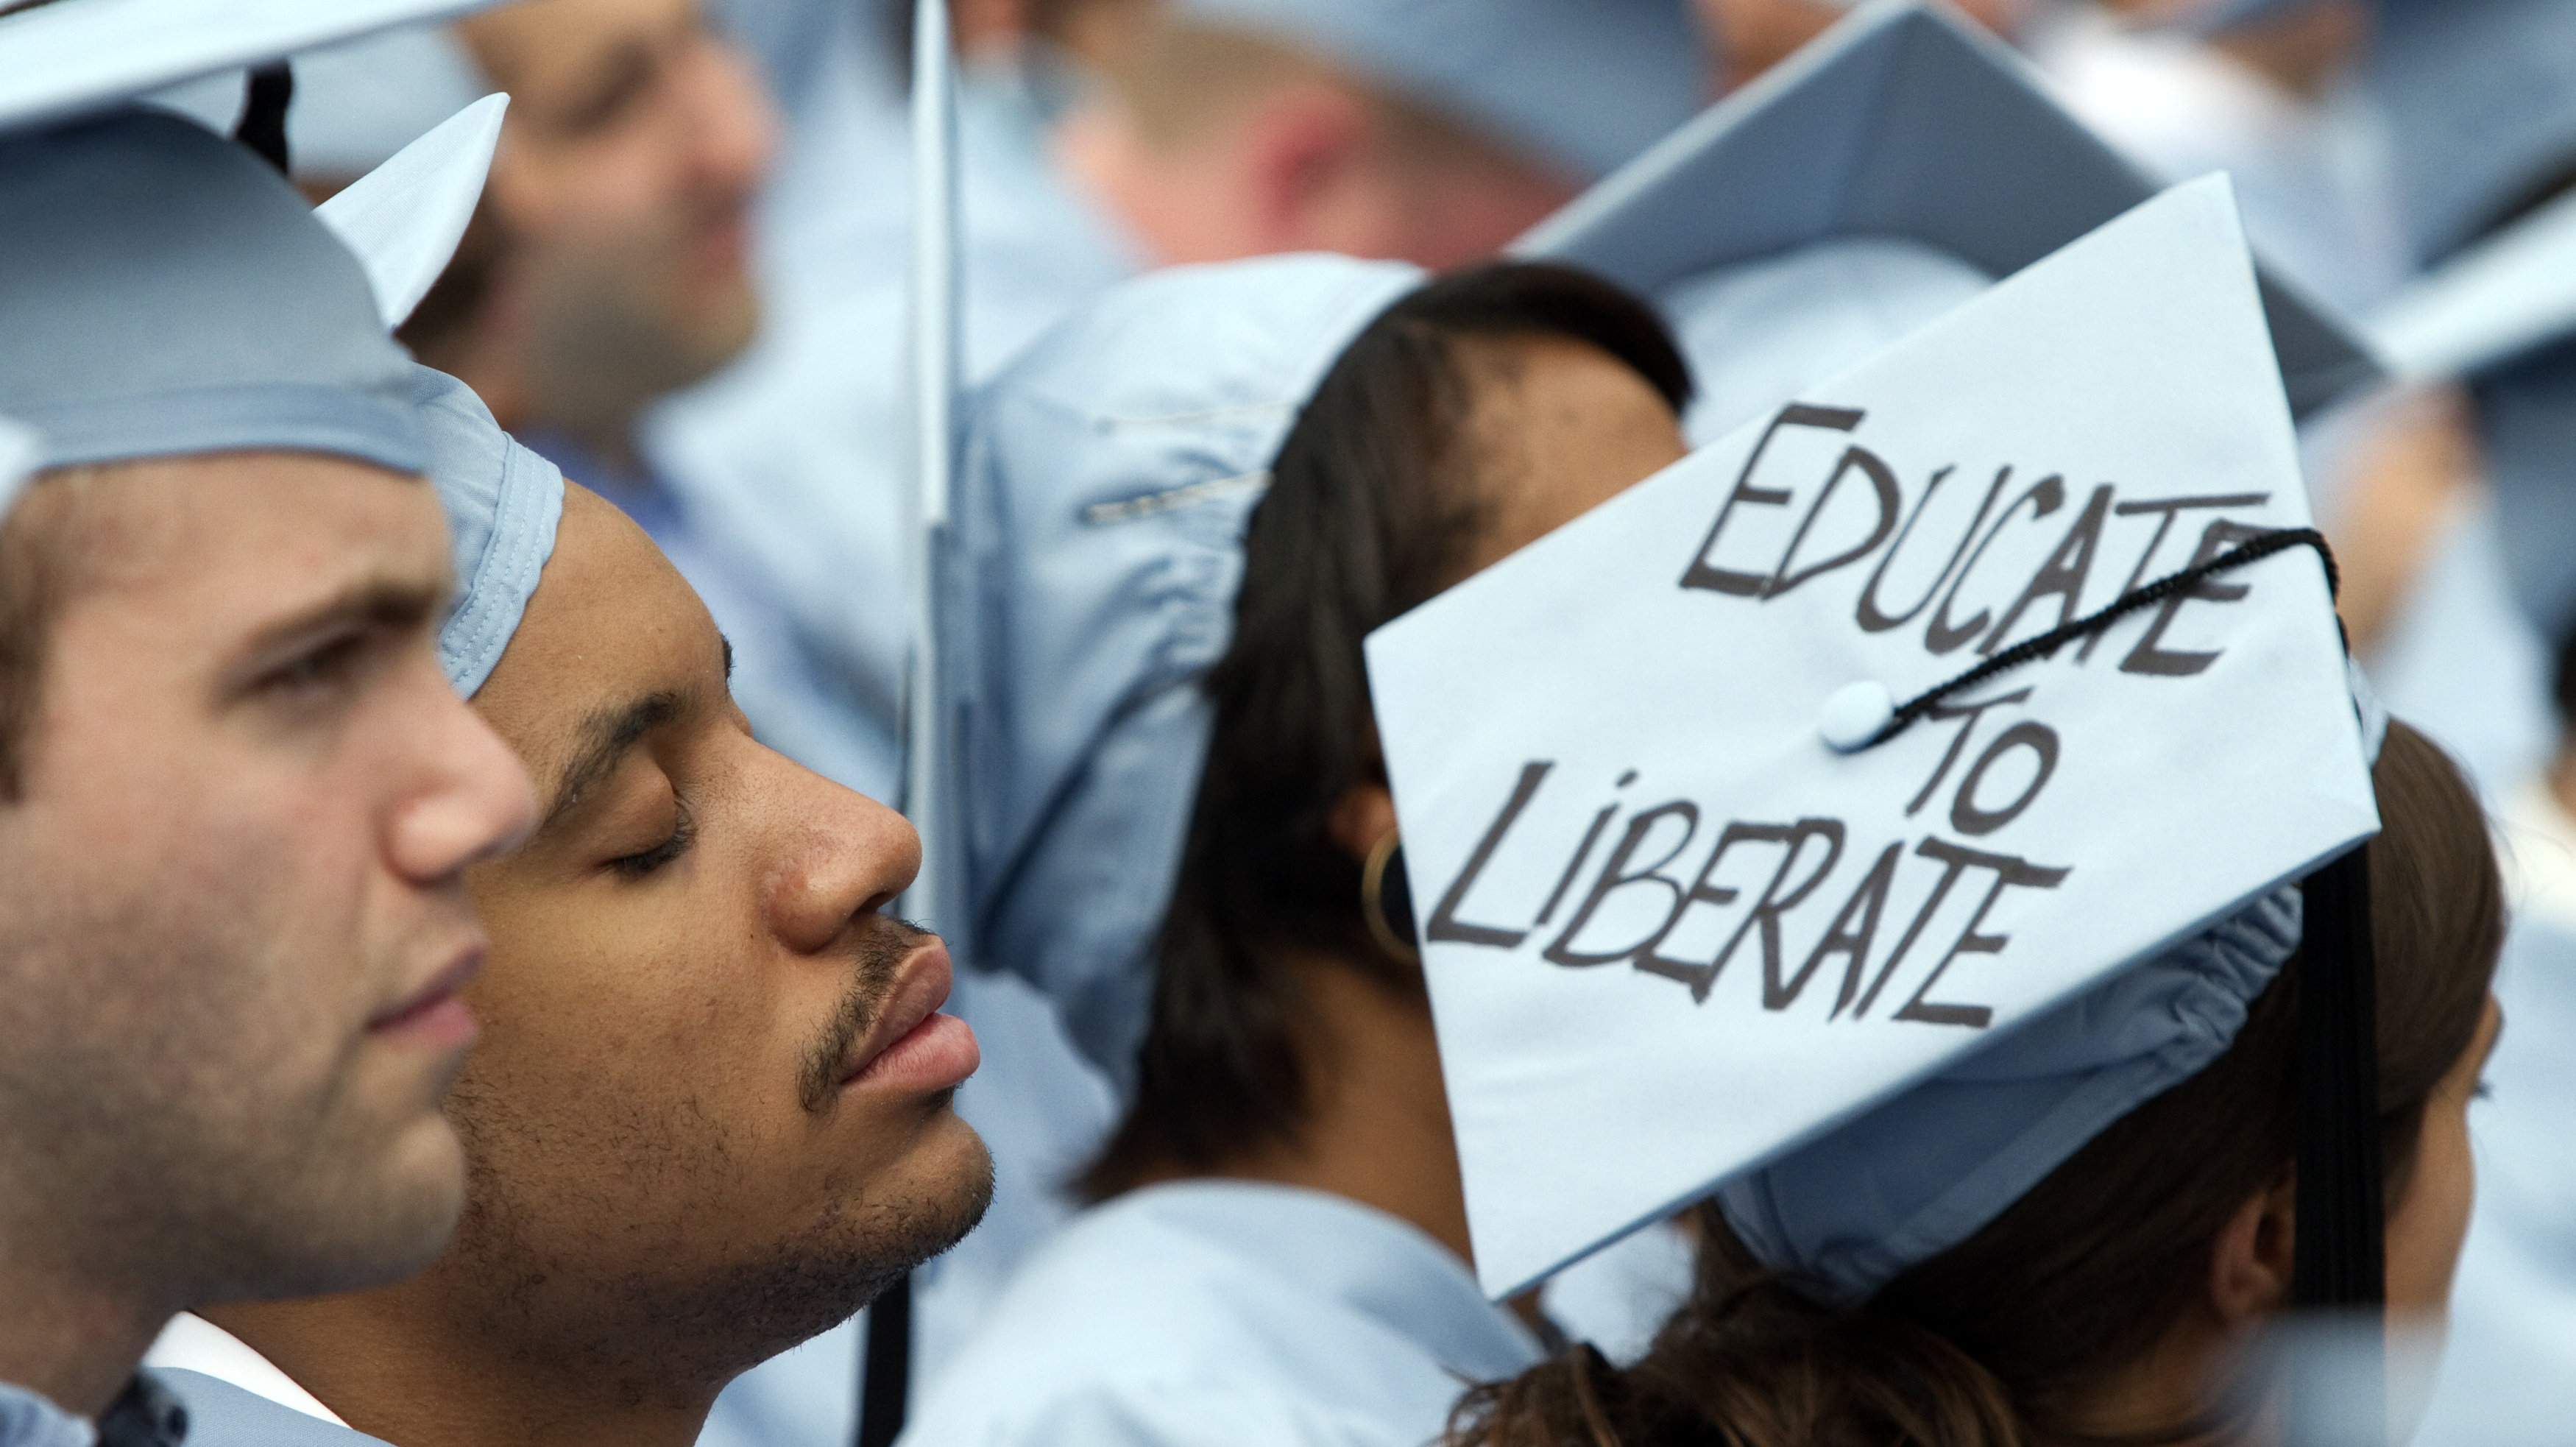 Graduate from Columbia University's School of Engineering sleeps during the university's commencement ceremony in New York